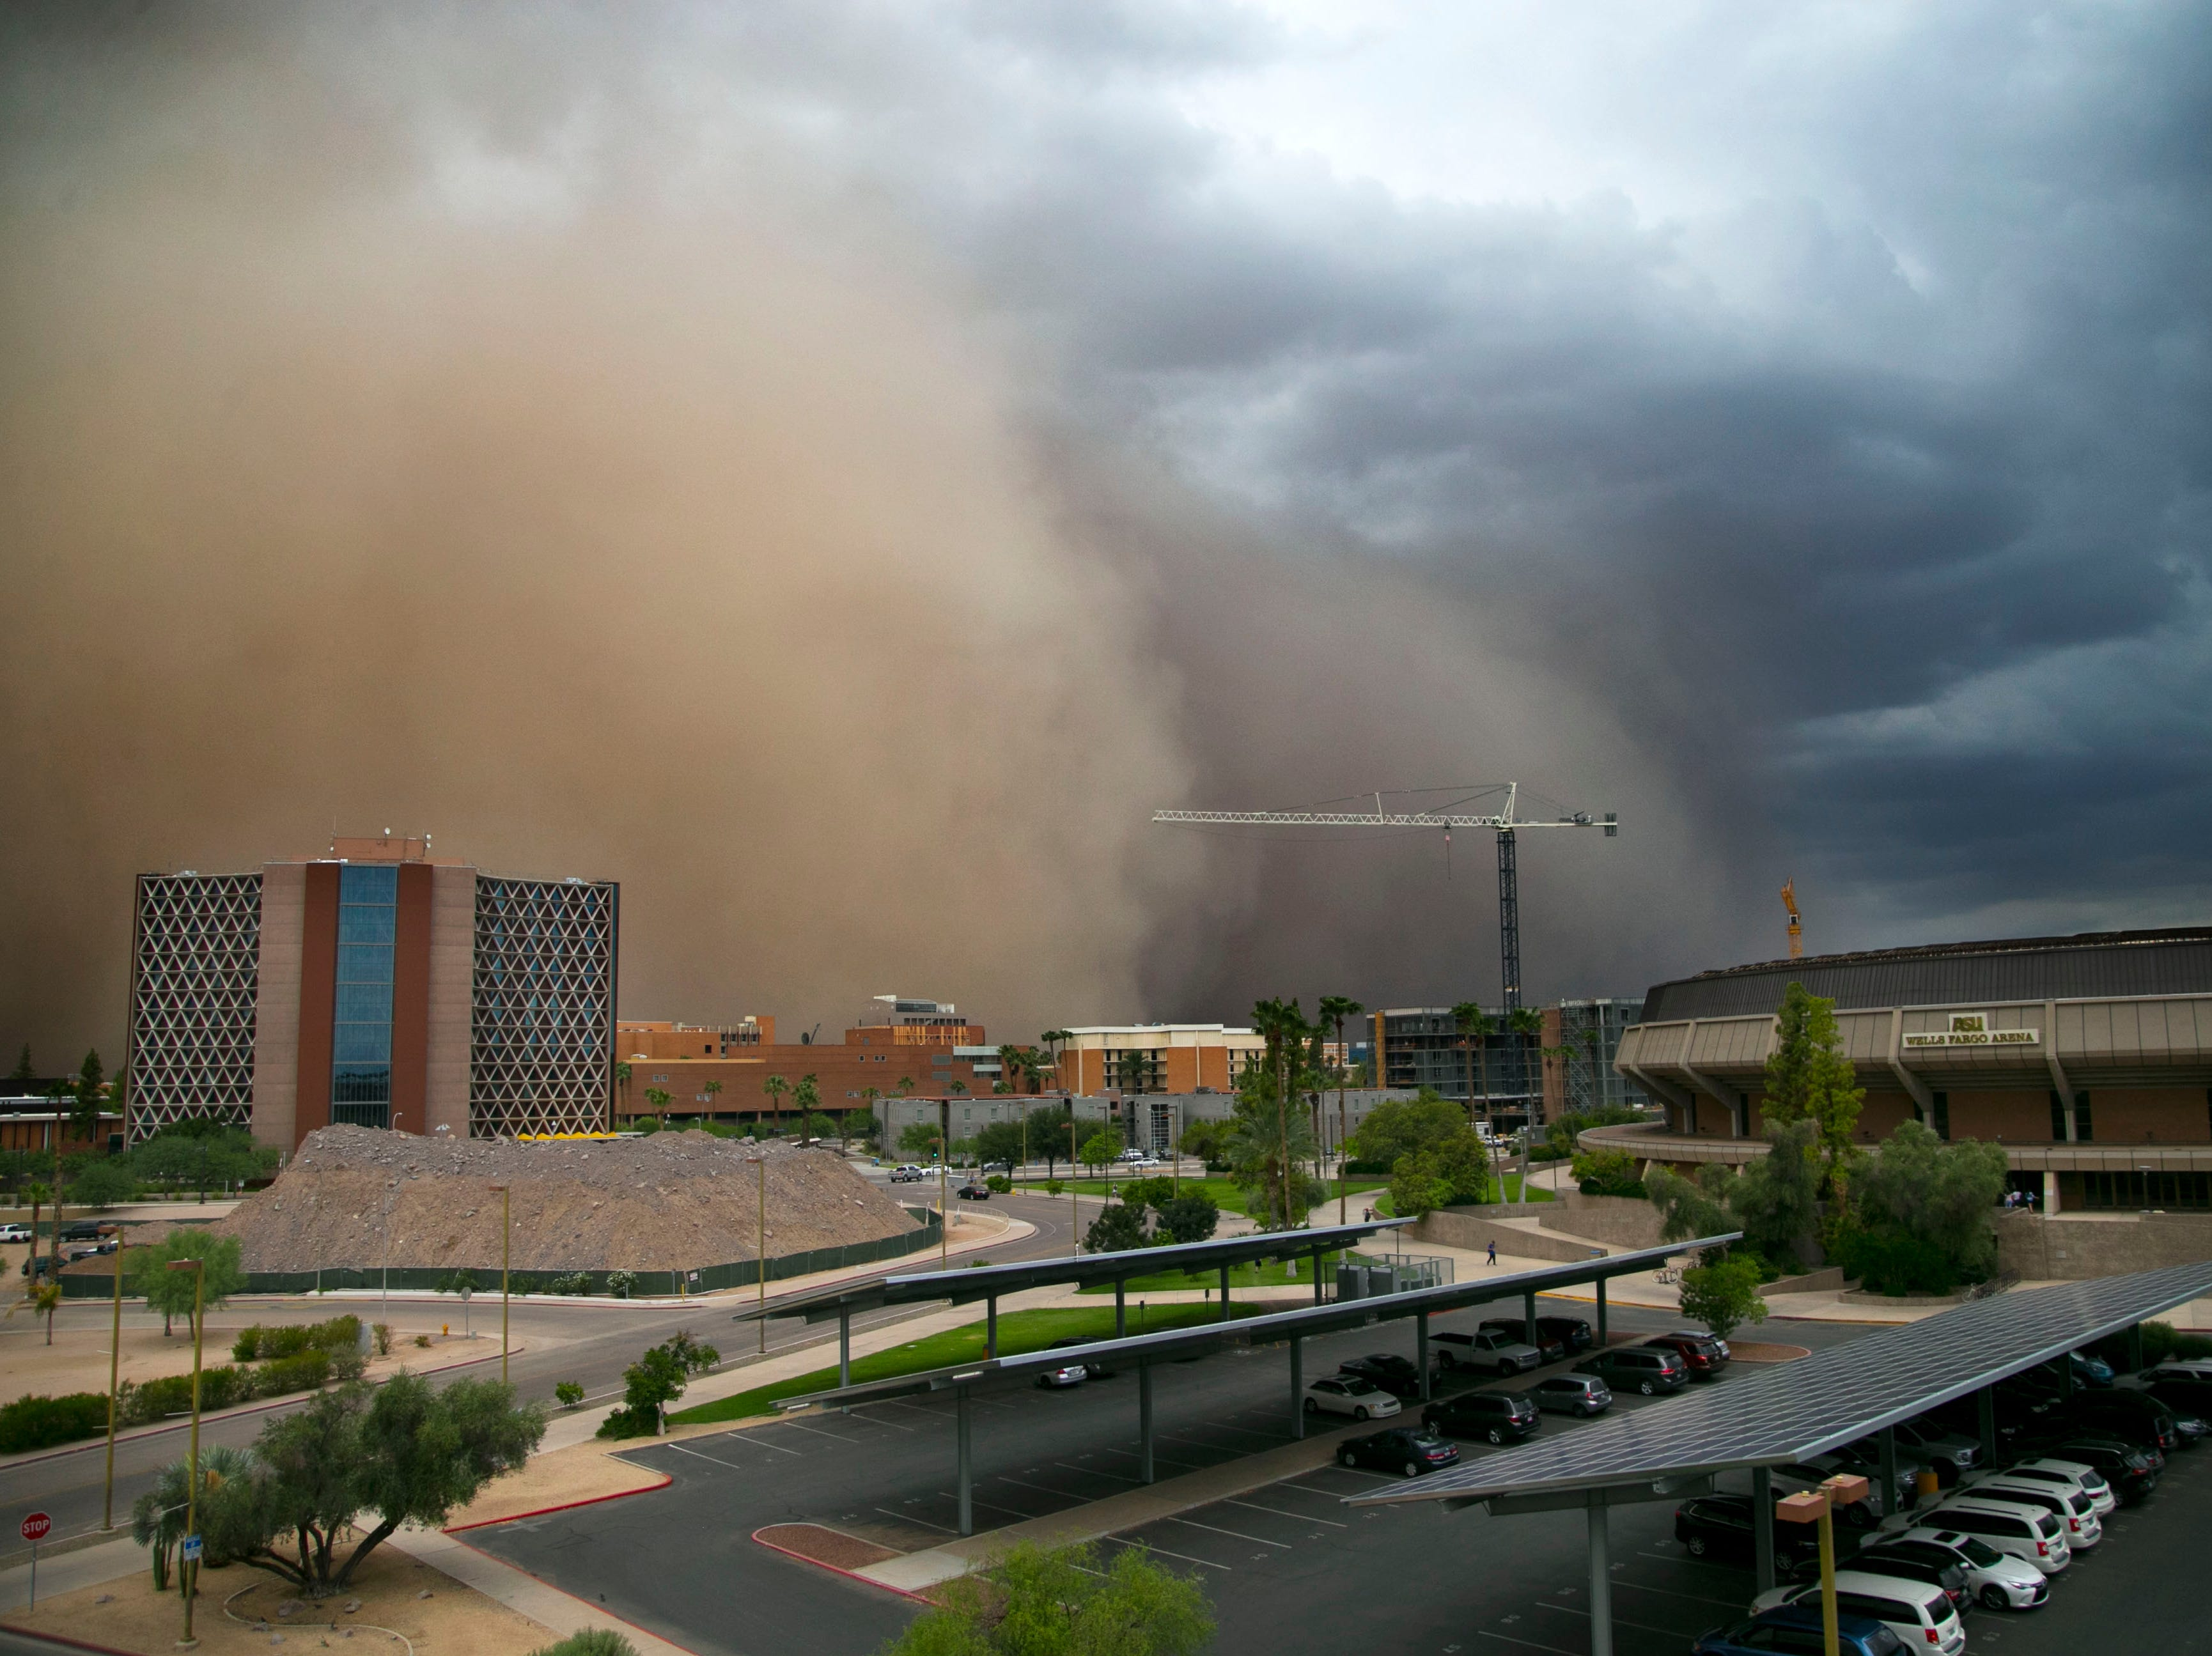 A dust storm moves towards Wells Fargo Arena in Tempe on Tuesday, August 9, 2016. (Via OlyDrop)